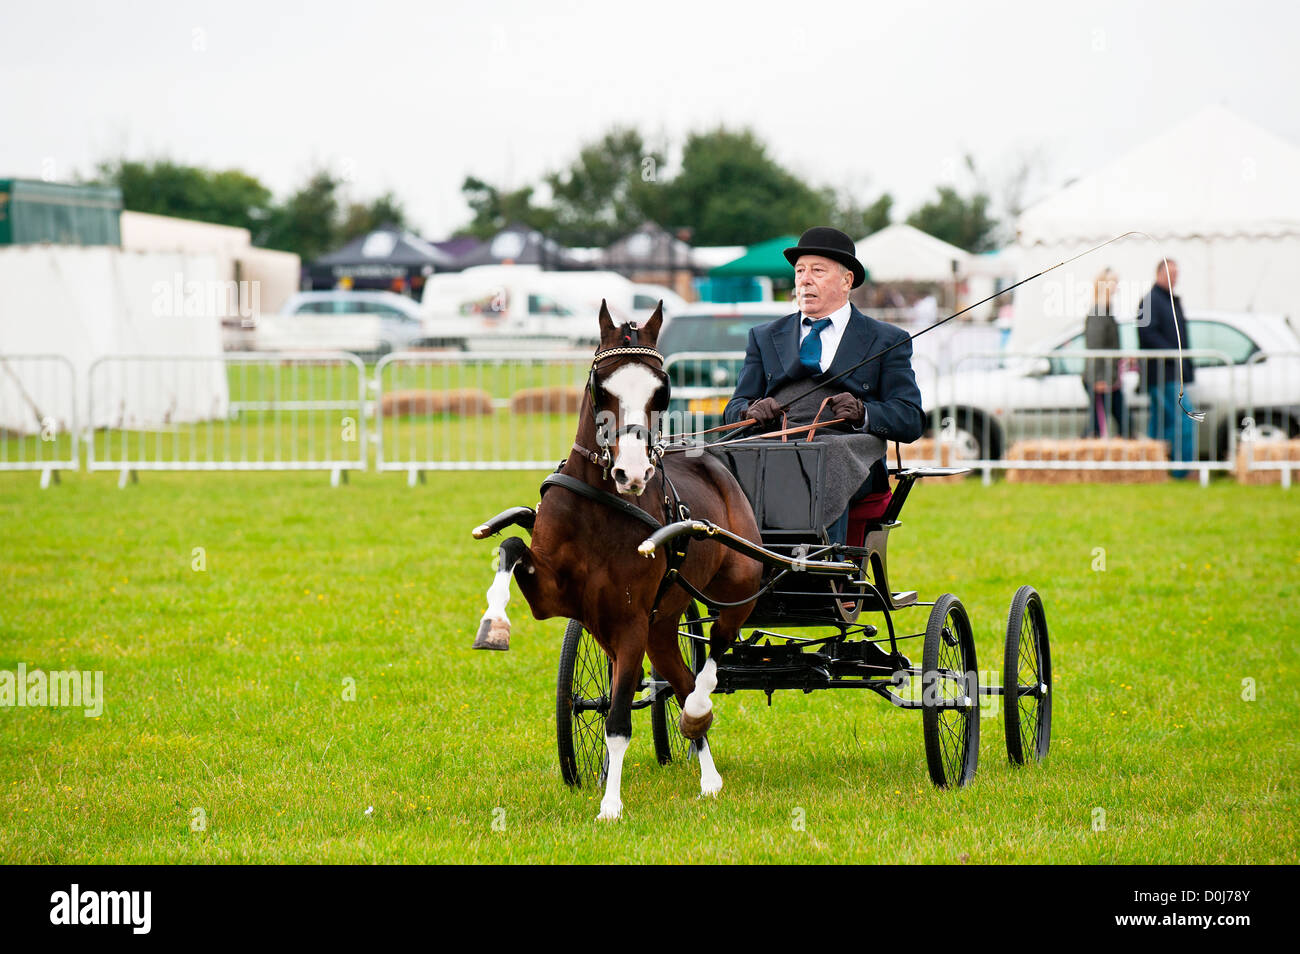 A horse and carriage at the Orsett Country Show. Stock Photo